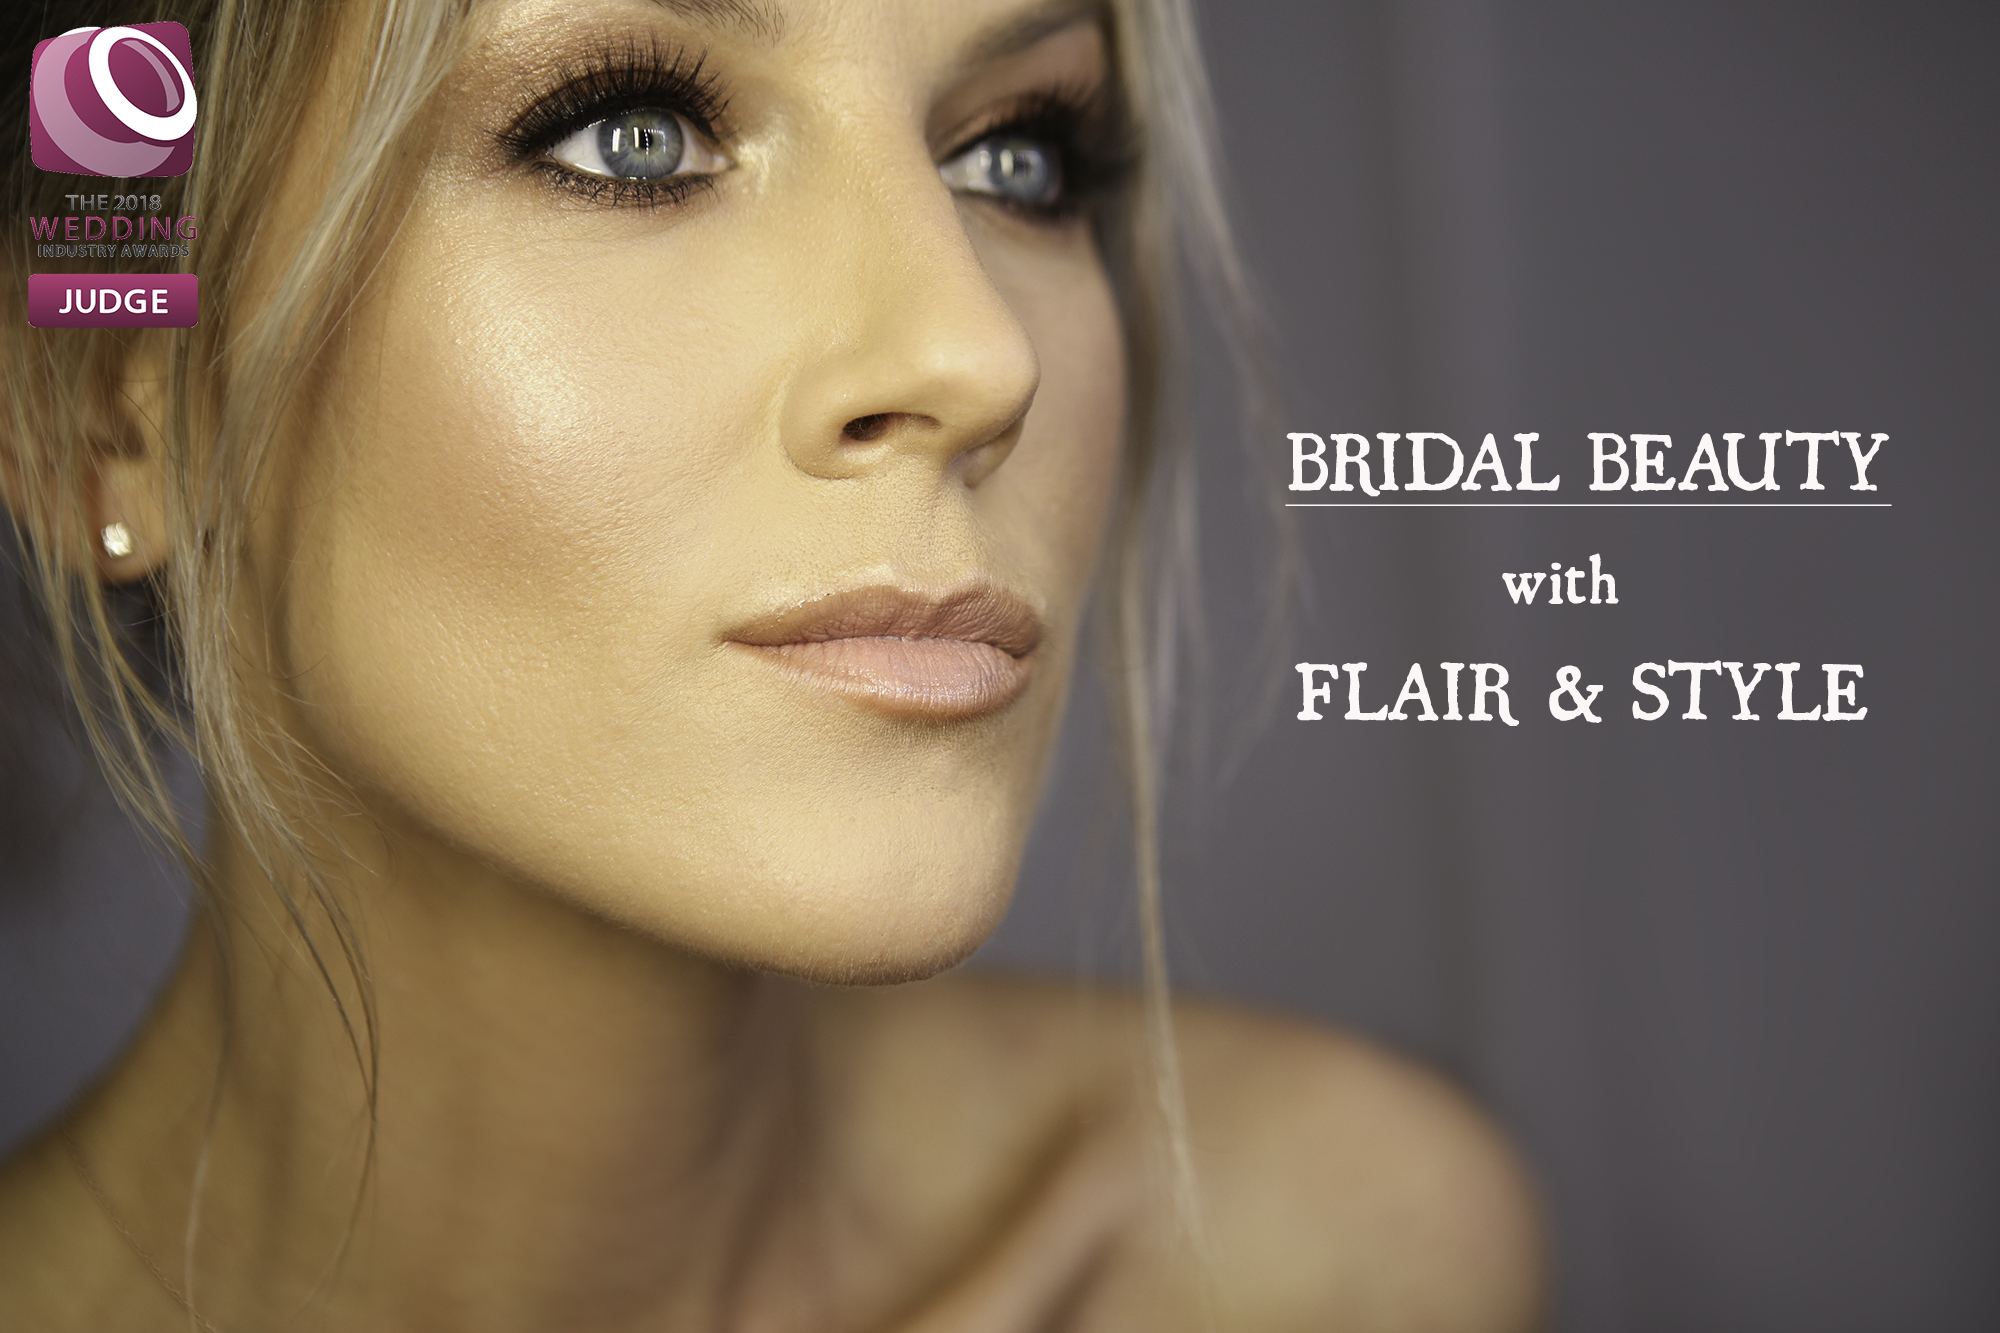 best bridal makeup artist london,best bridal hairstylist london,bridal makeup, wedding makeup,bridal makeup lesson